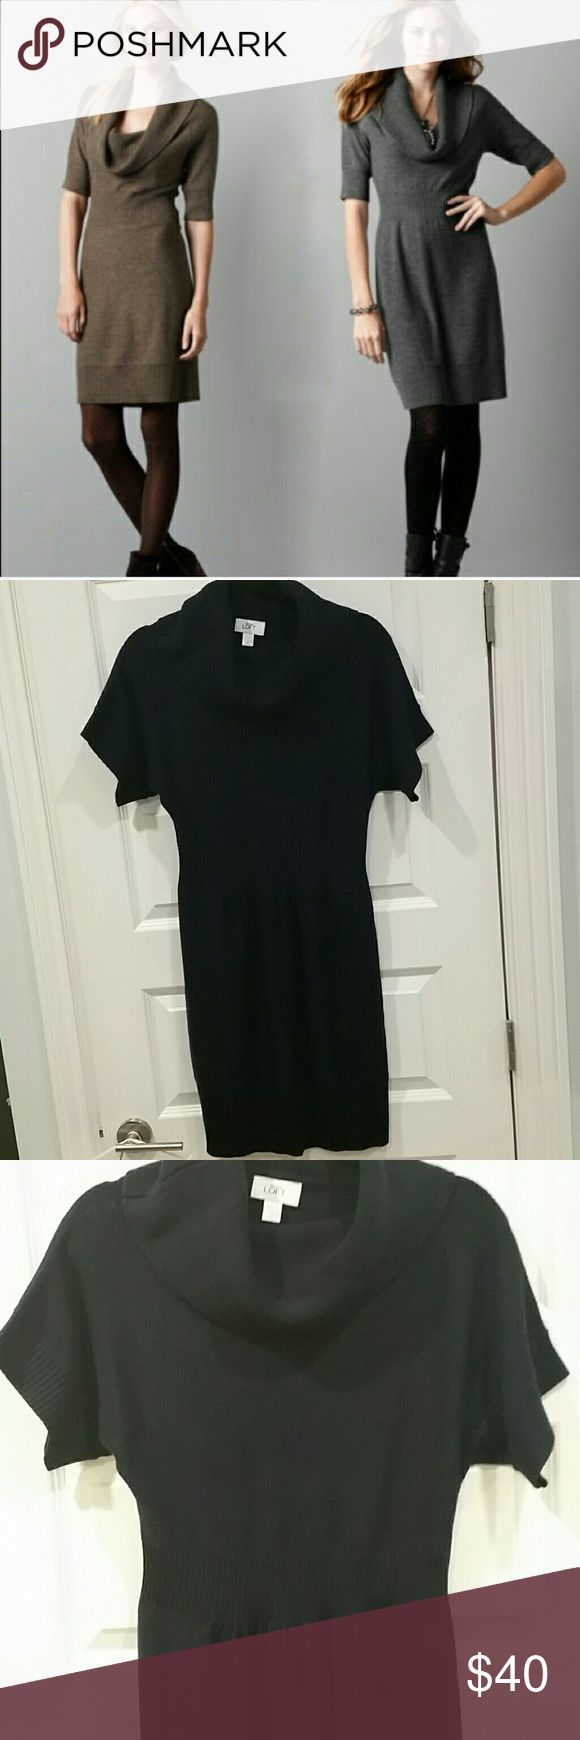 NWOT Navy blue Loft cowl neck sweater dress Loft sweater dress with a cowl neck, short sleeves and a cinched waist. So cute with tights and a belt. LOFT Dresses Mini